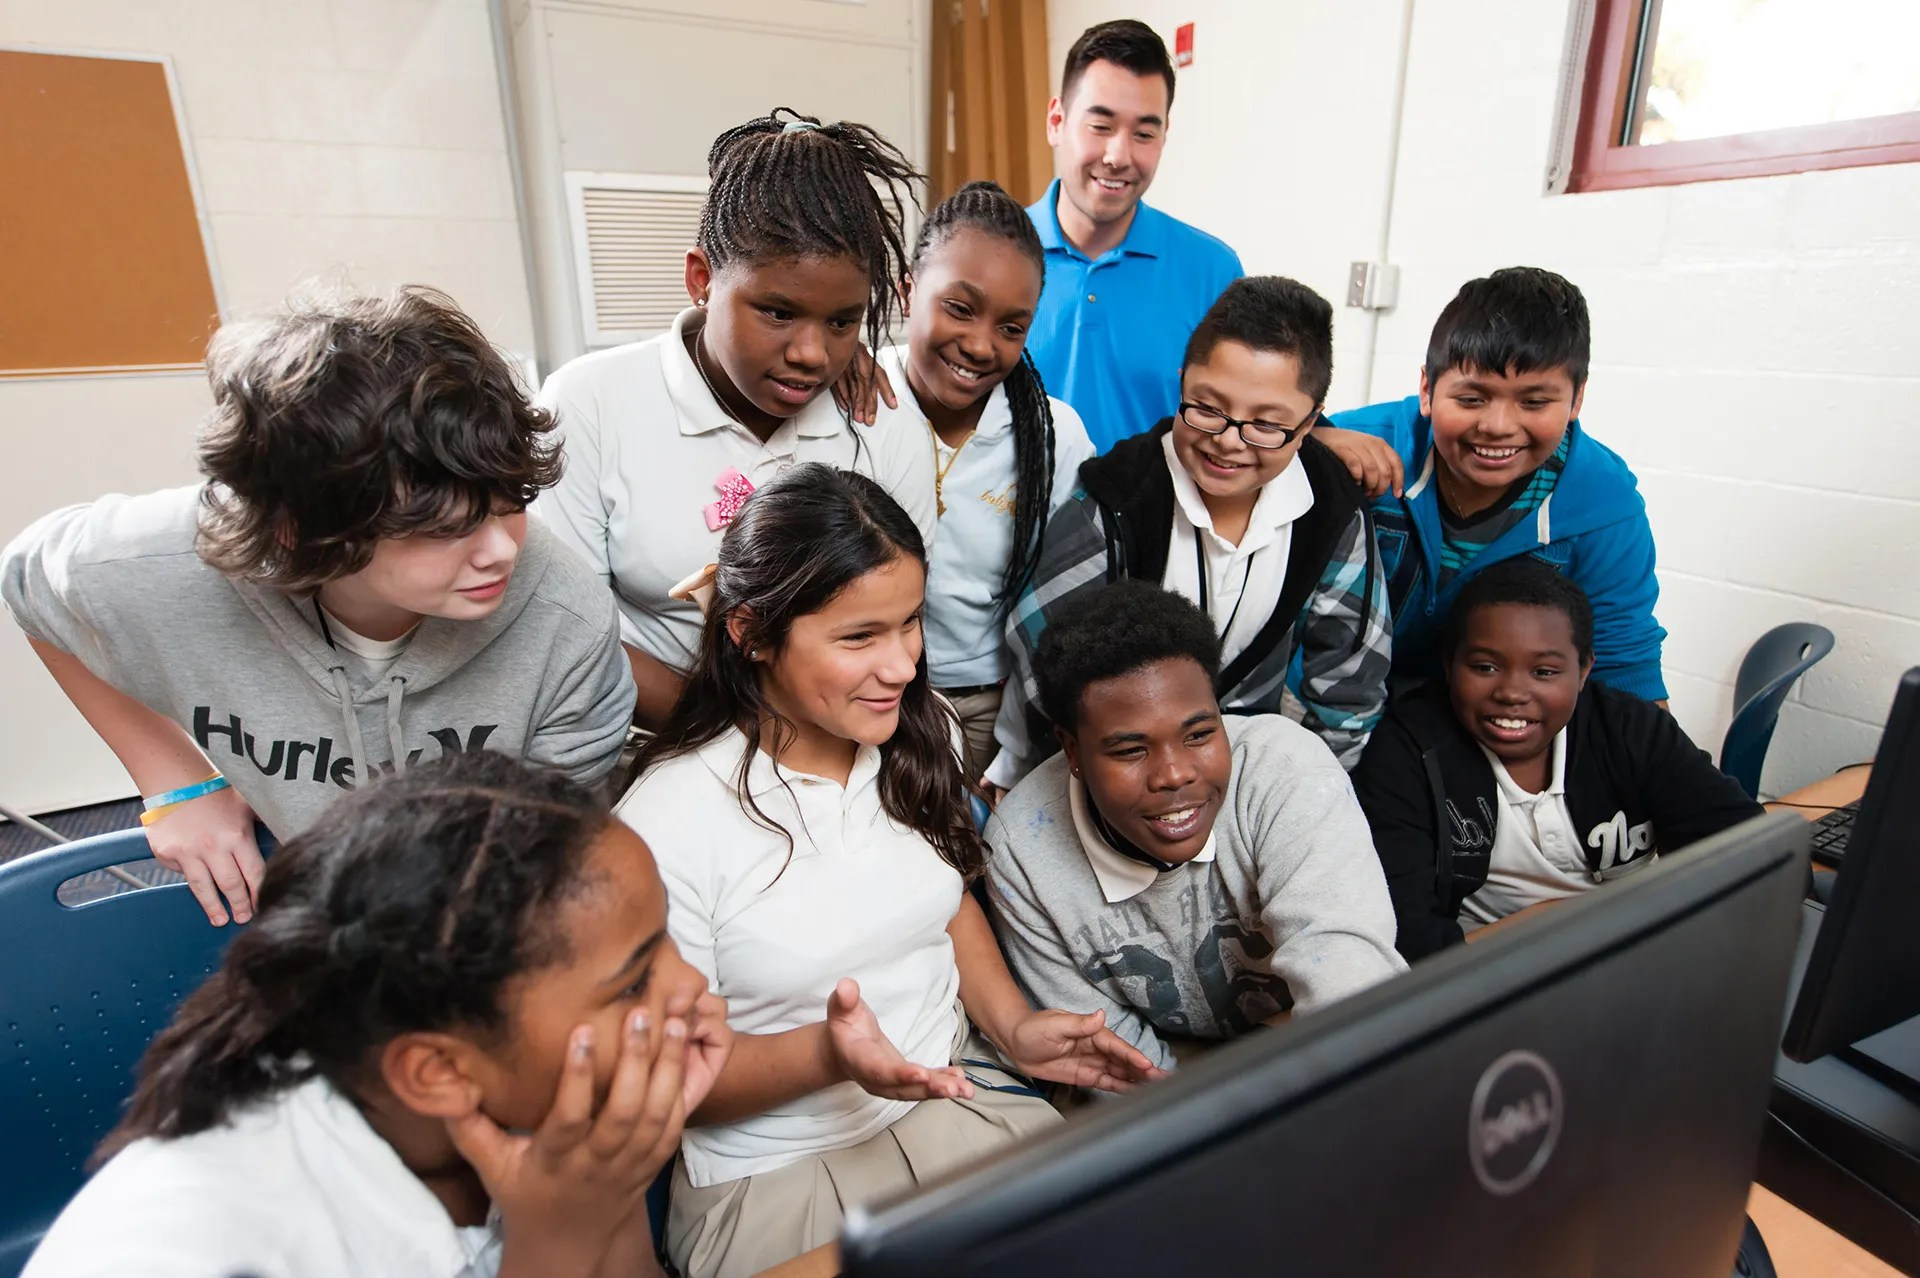 Huh Schools Think Kids Don T Want To Learn Computer